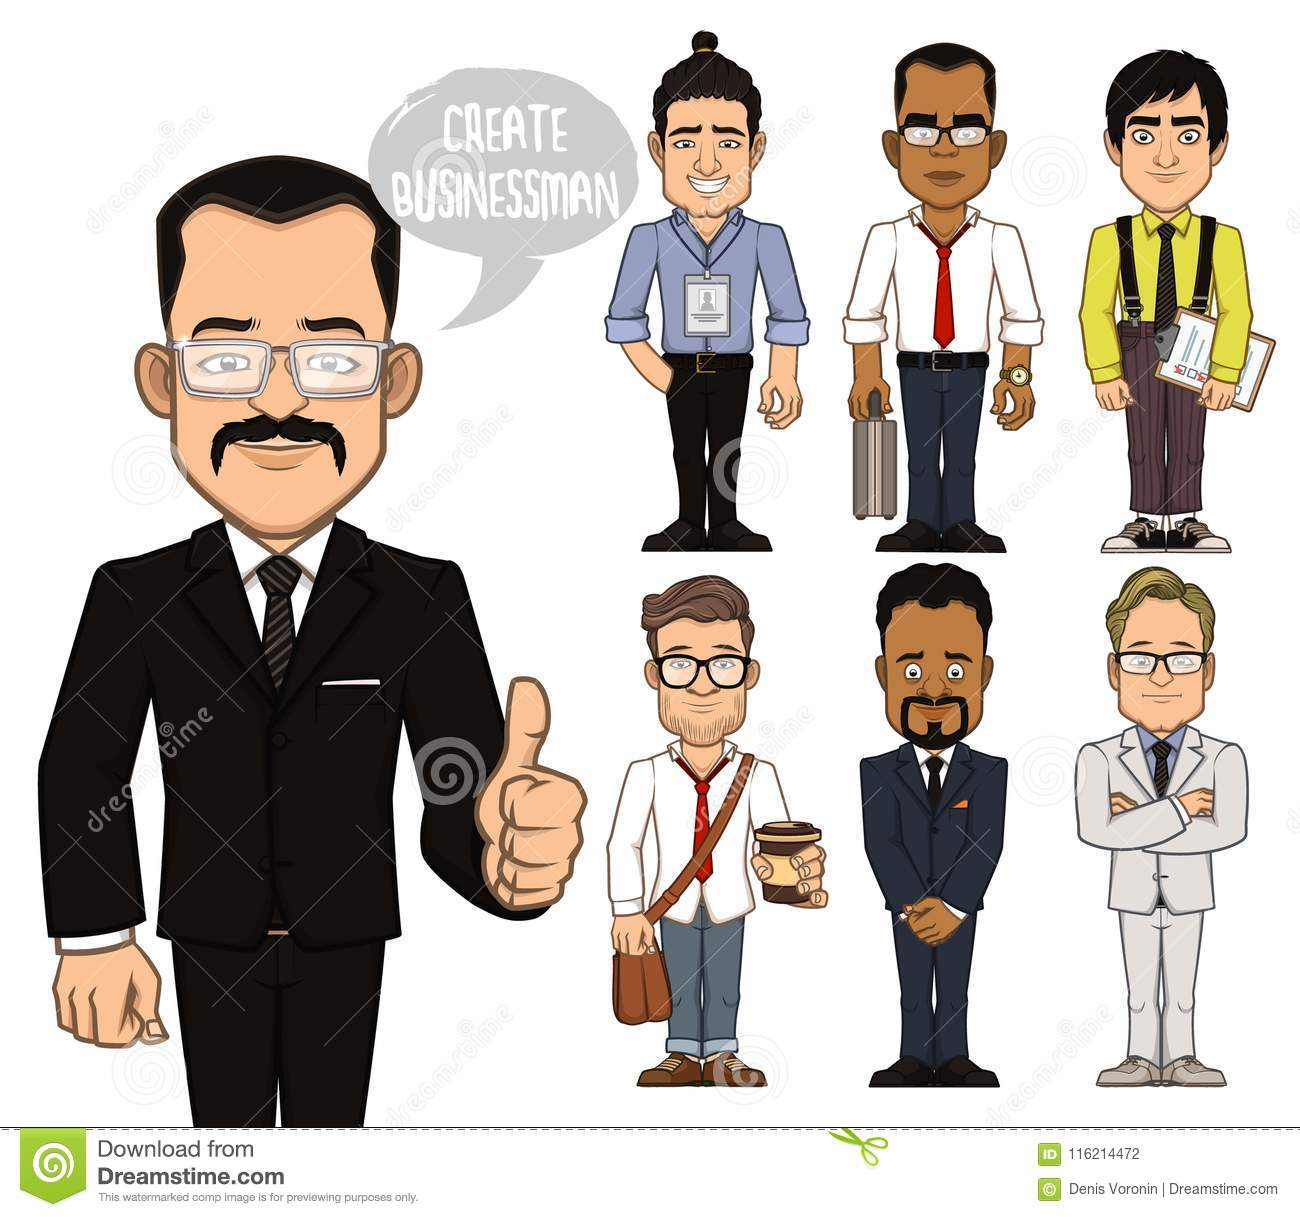 Create businessman characters. Part 2